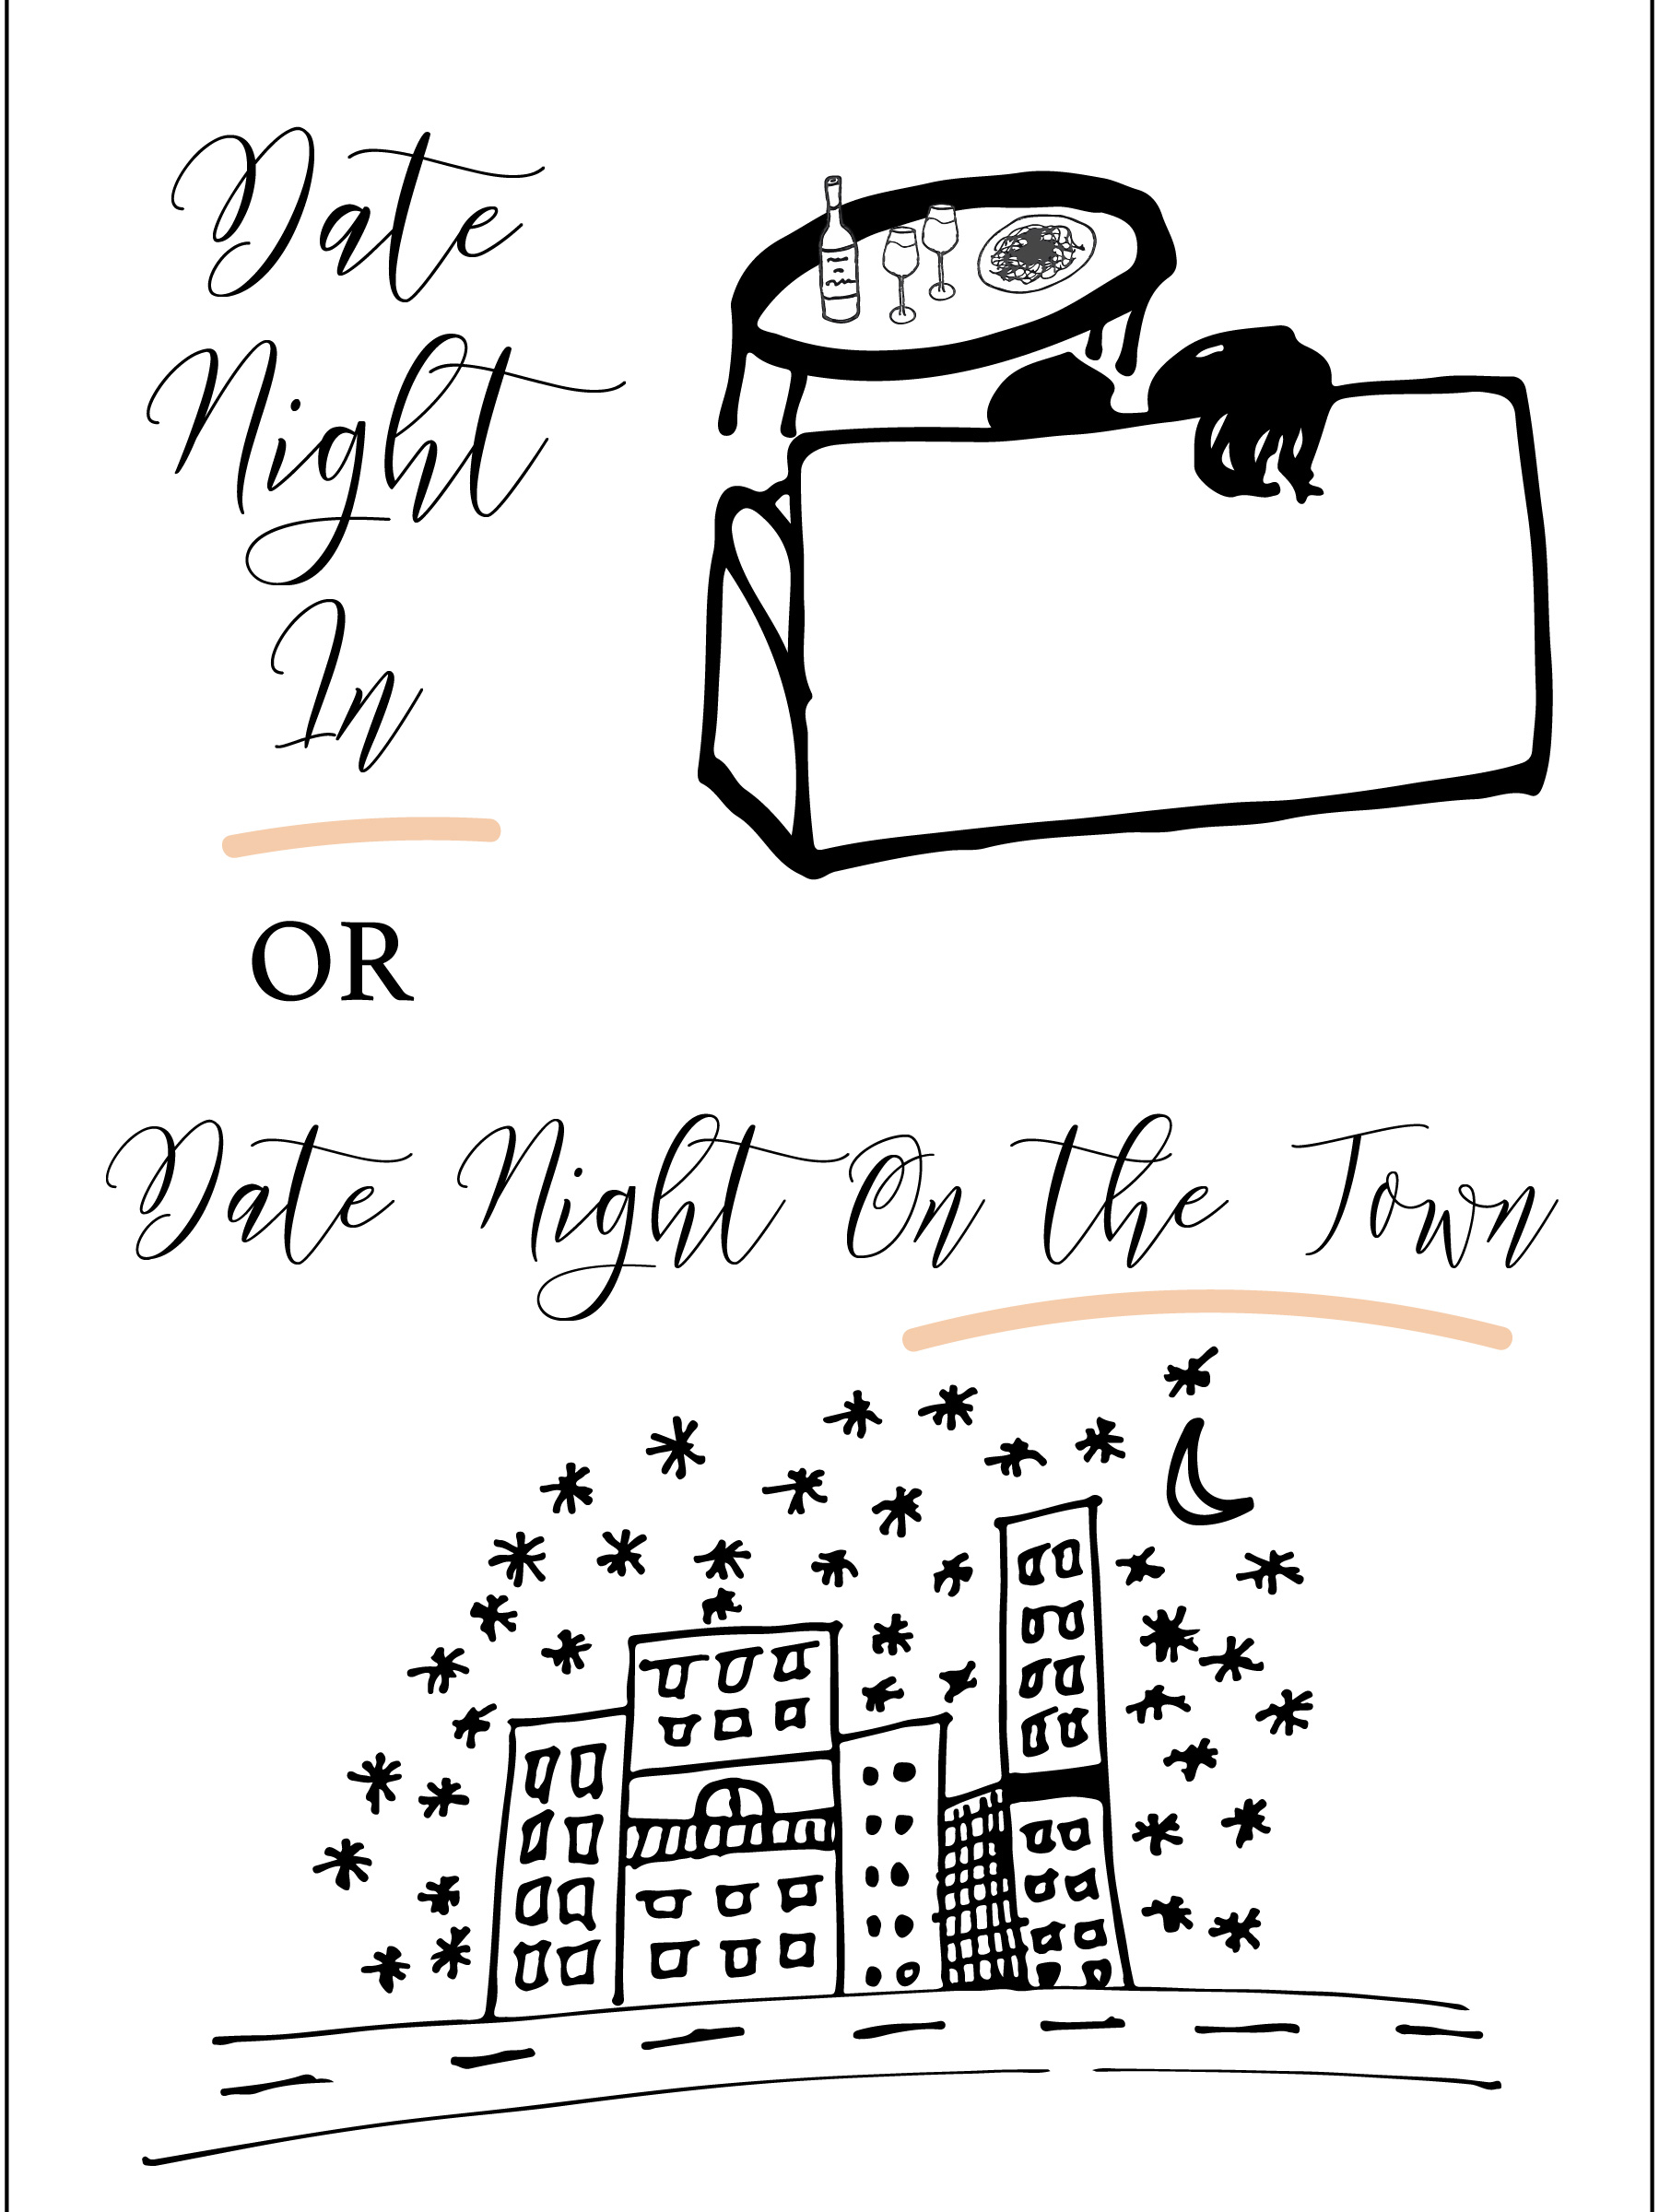 Date Night In or Out - 2-01.jpg